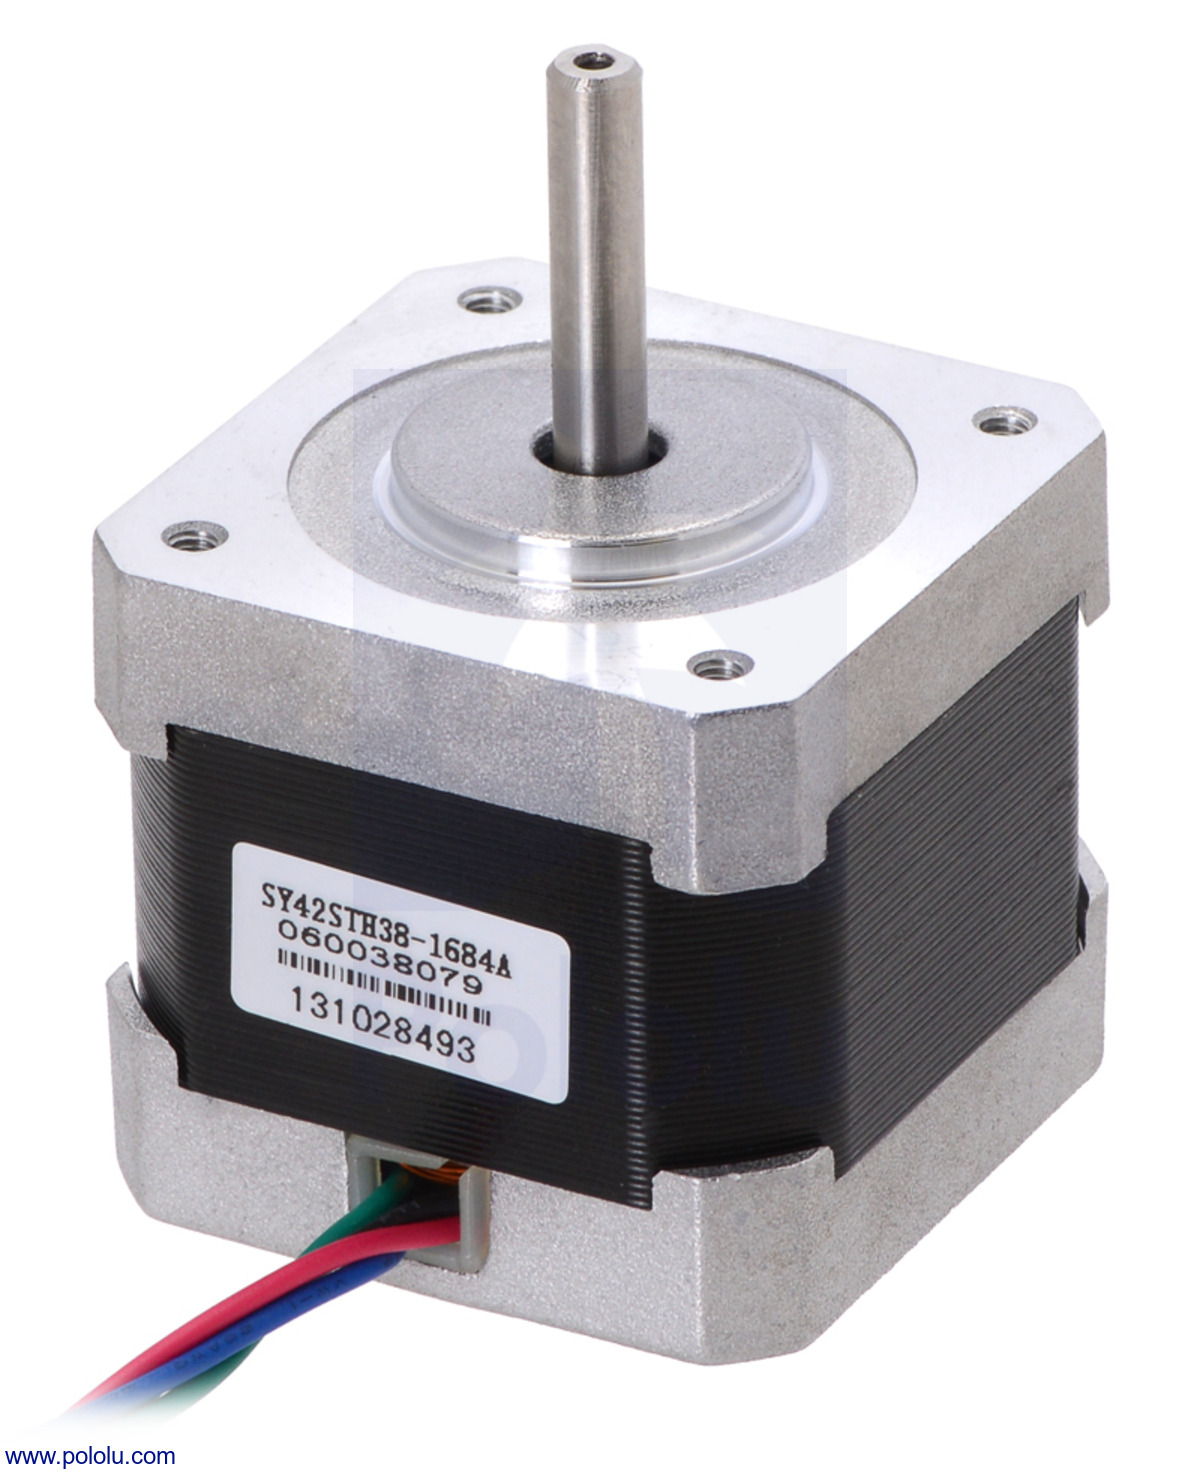 Stepper Motor: Bipolar, 200 Steps/Rev, 42×38mm, 2.8V, 1.7 A/Phase on